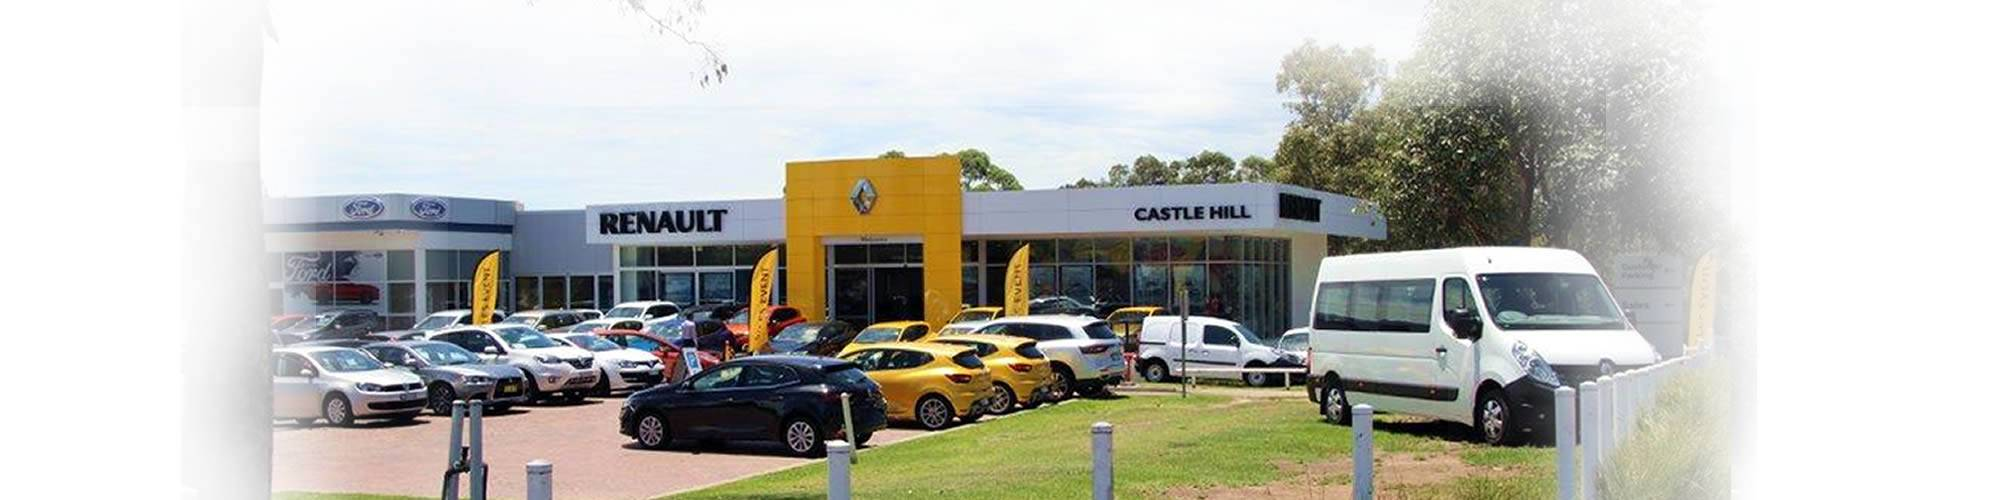 CastleHIllRenault HB2 Jan16 BJ